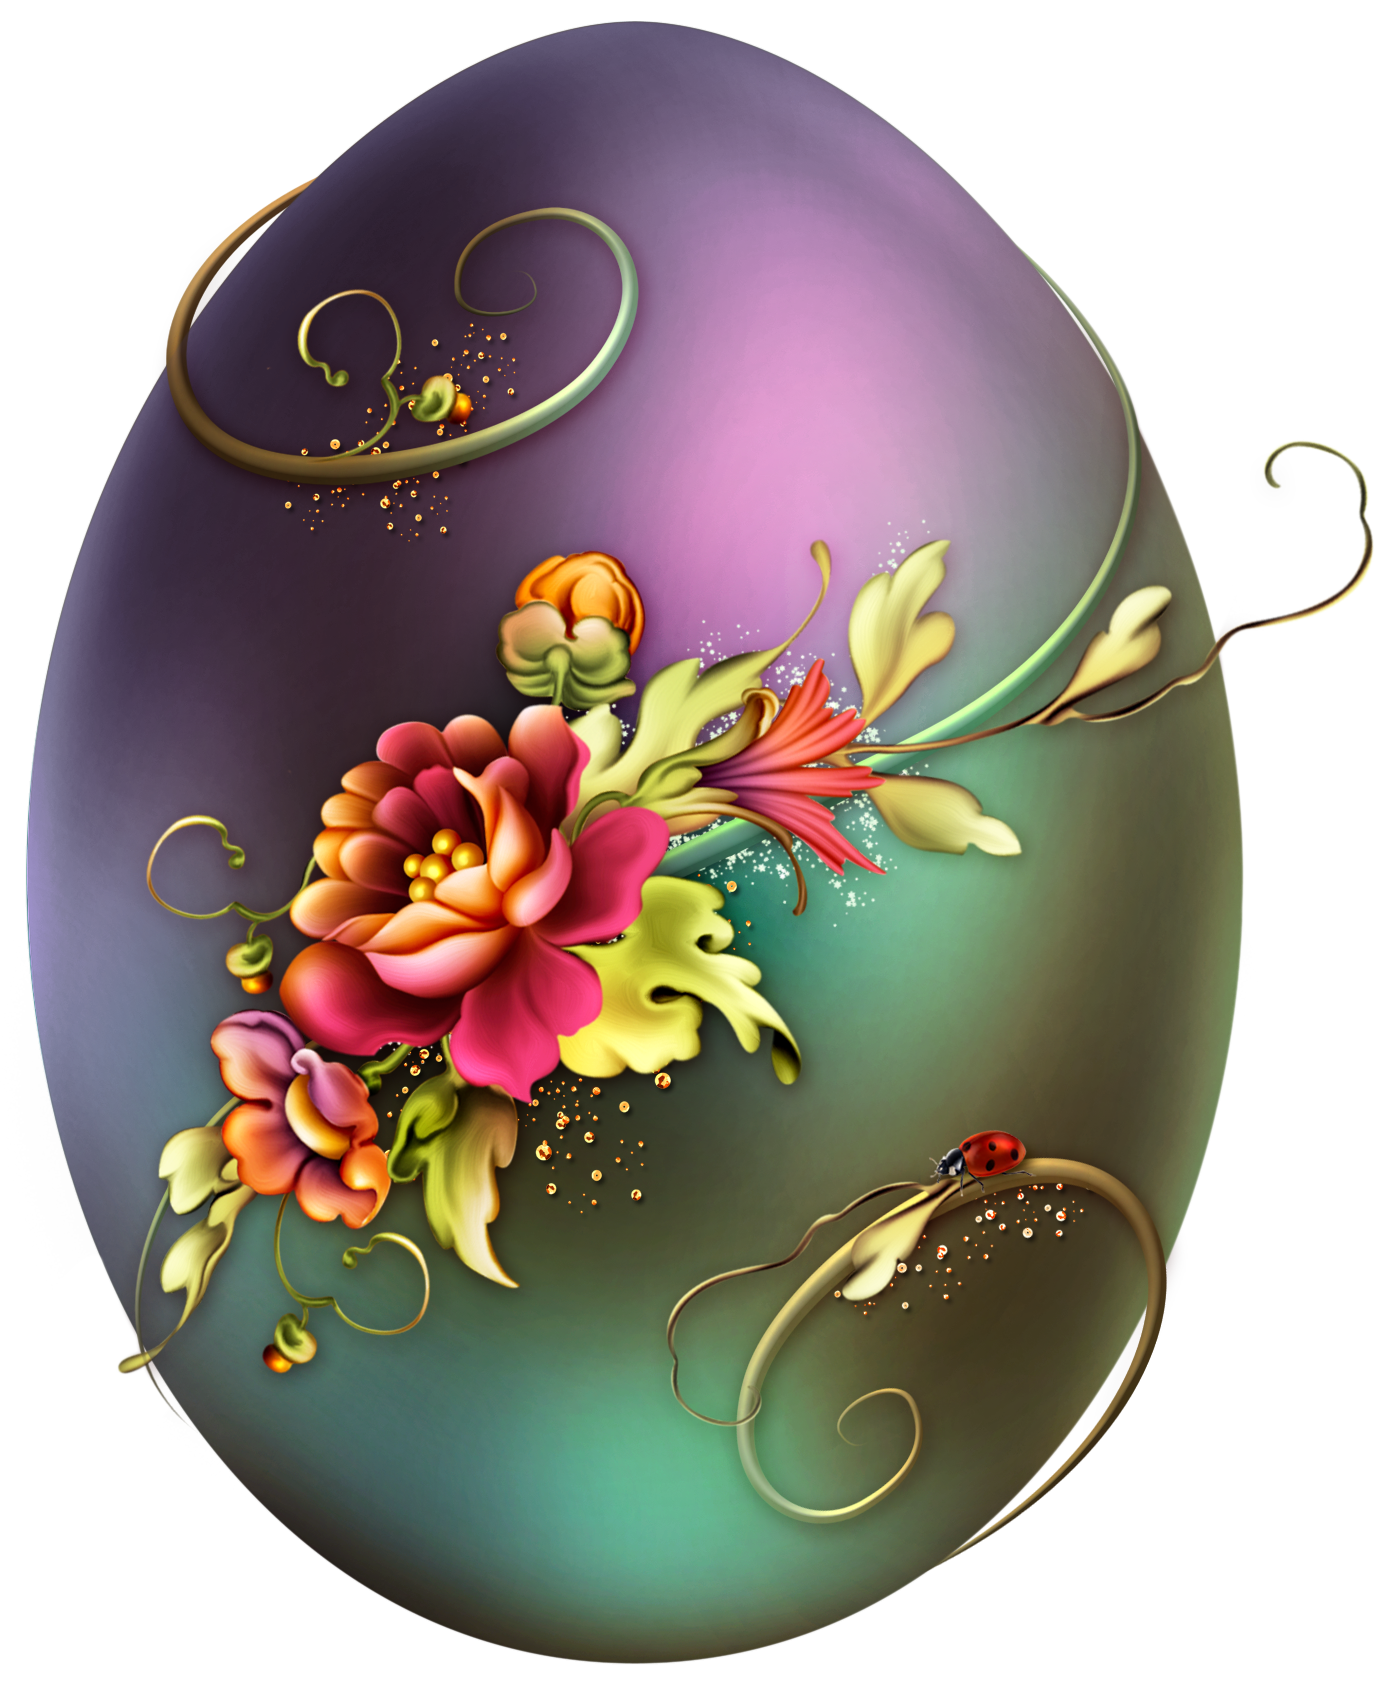 Pin By Lidia On Wielkanoc Easter